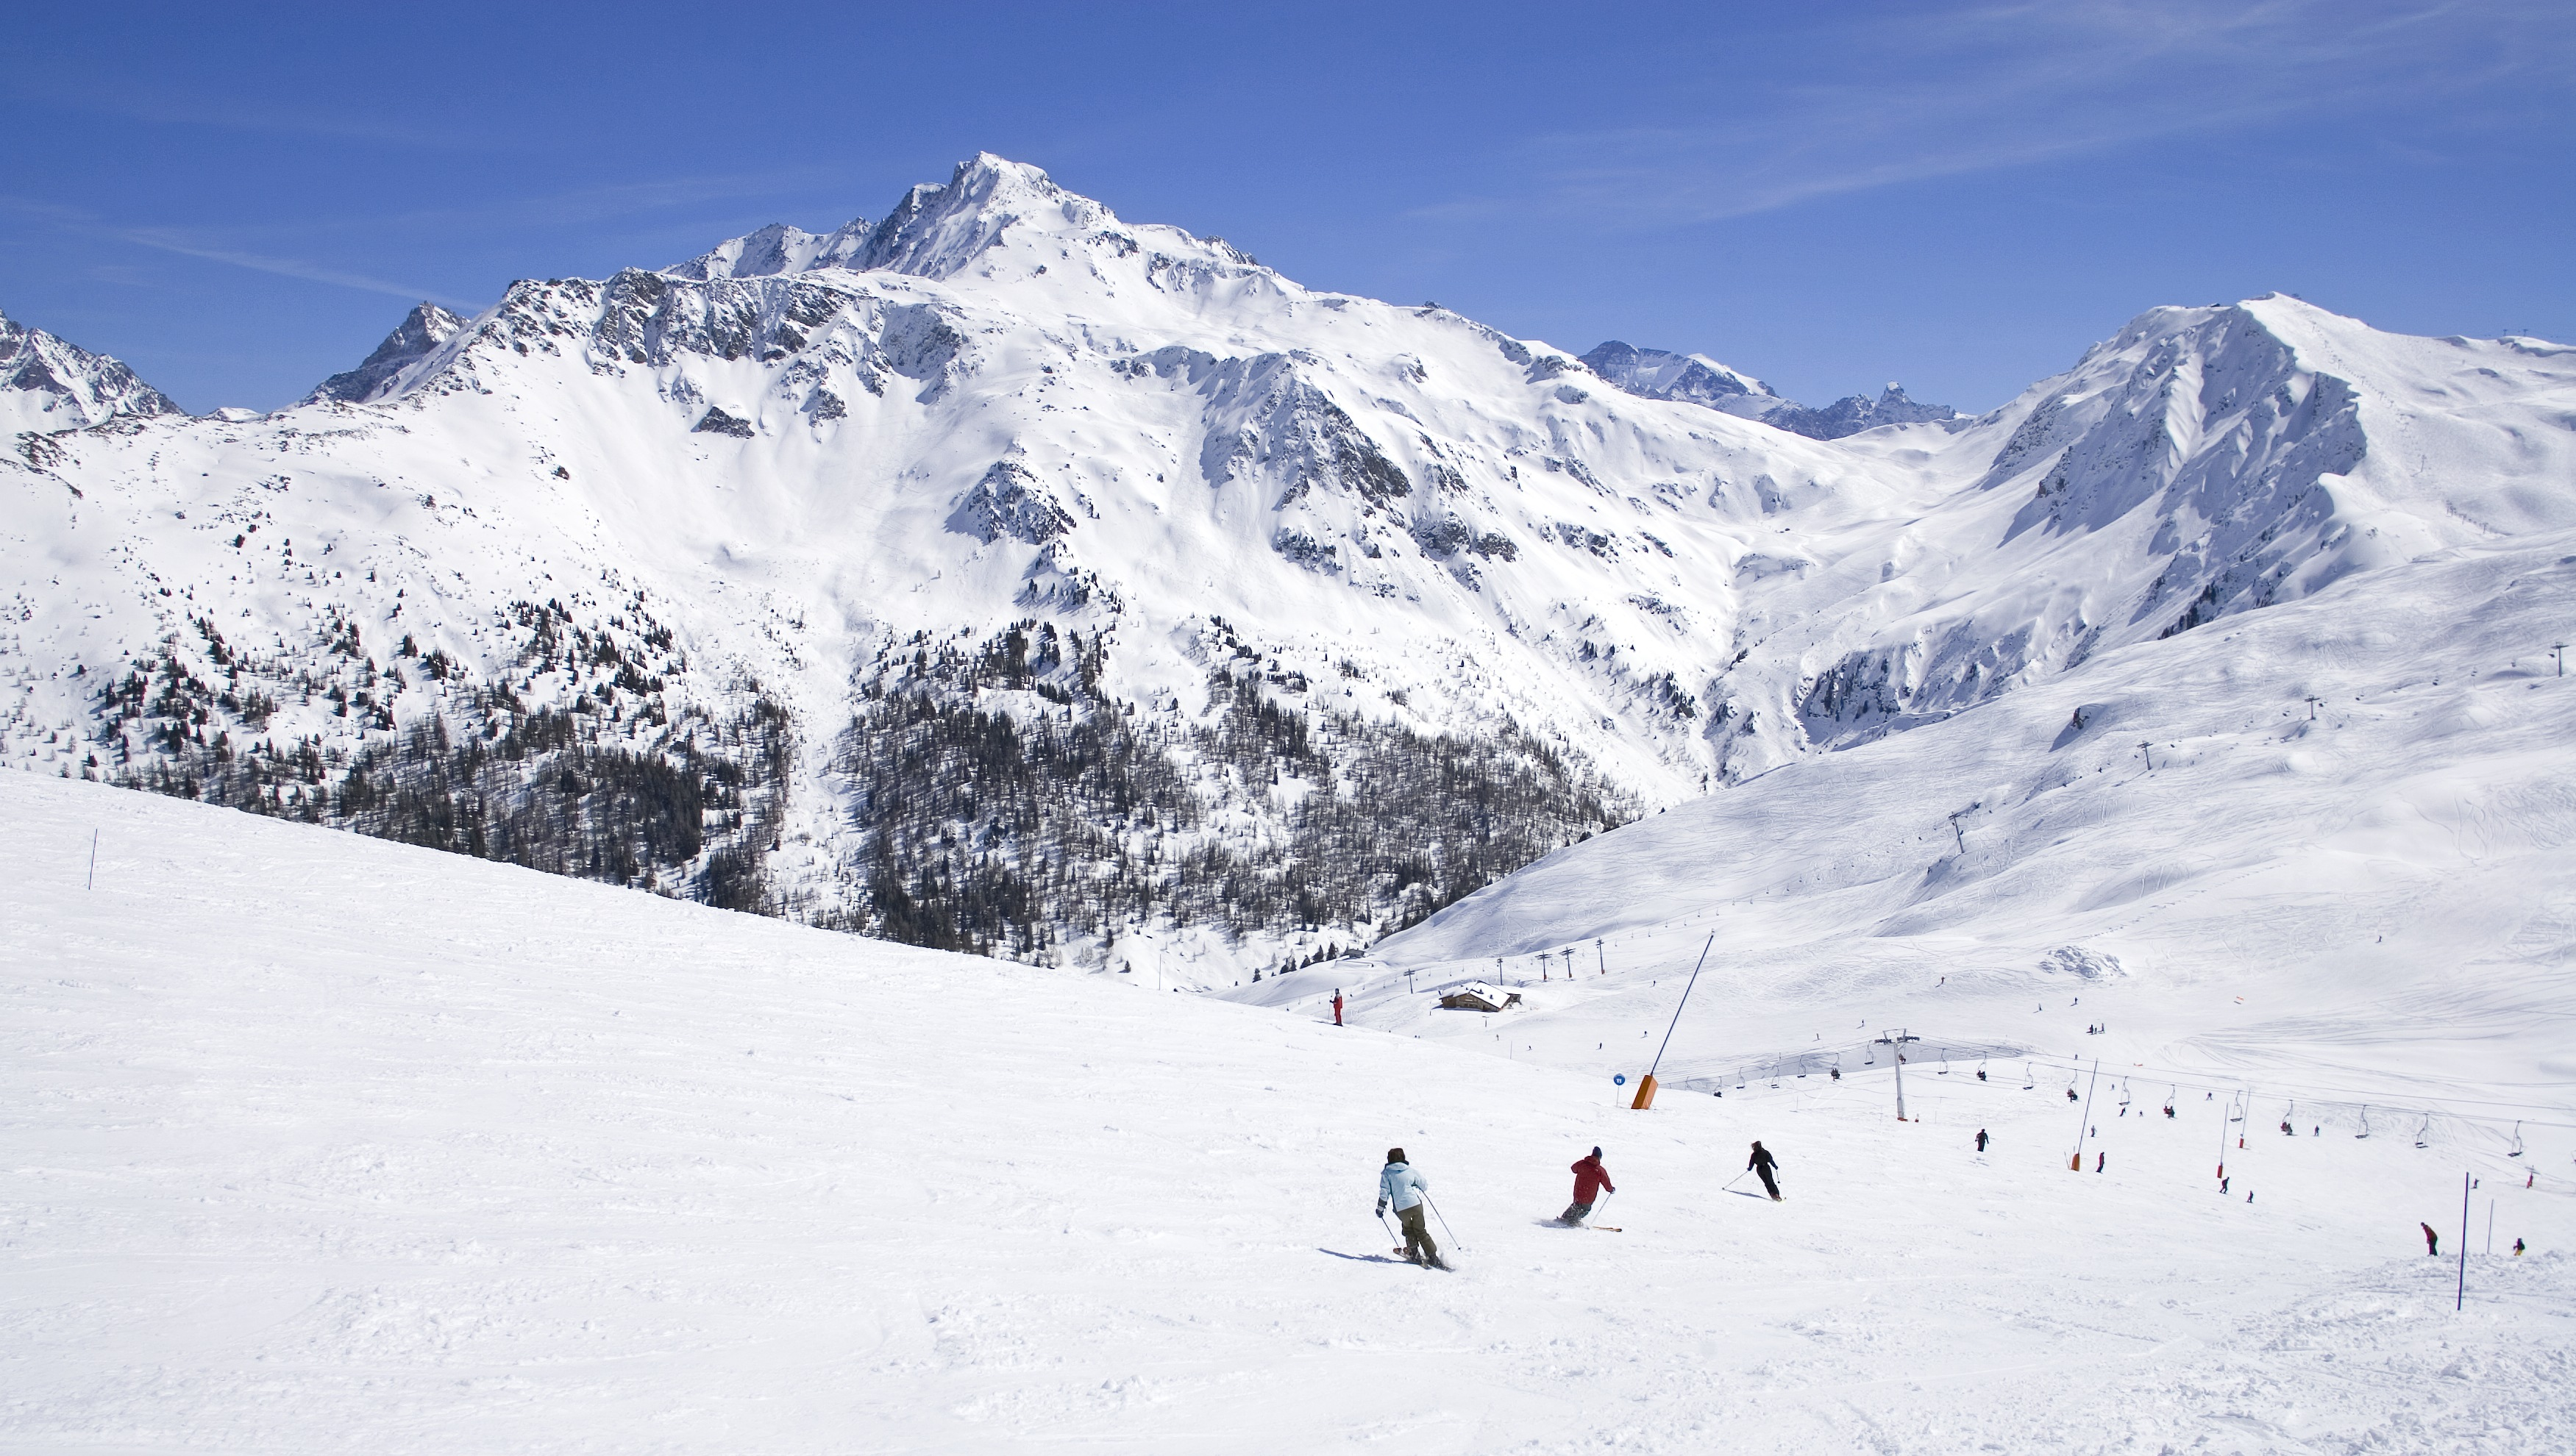 http://weloveski.intersport-rent.fr/wp-content/uploads/2014/12/La-Plagne-c-E.-Sirparanta.jpg